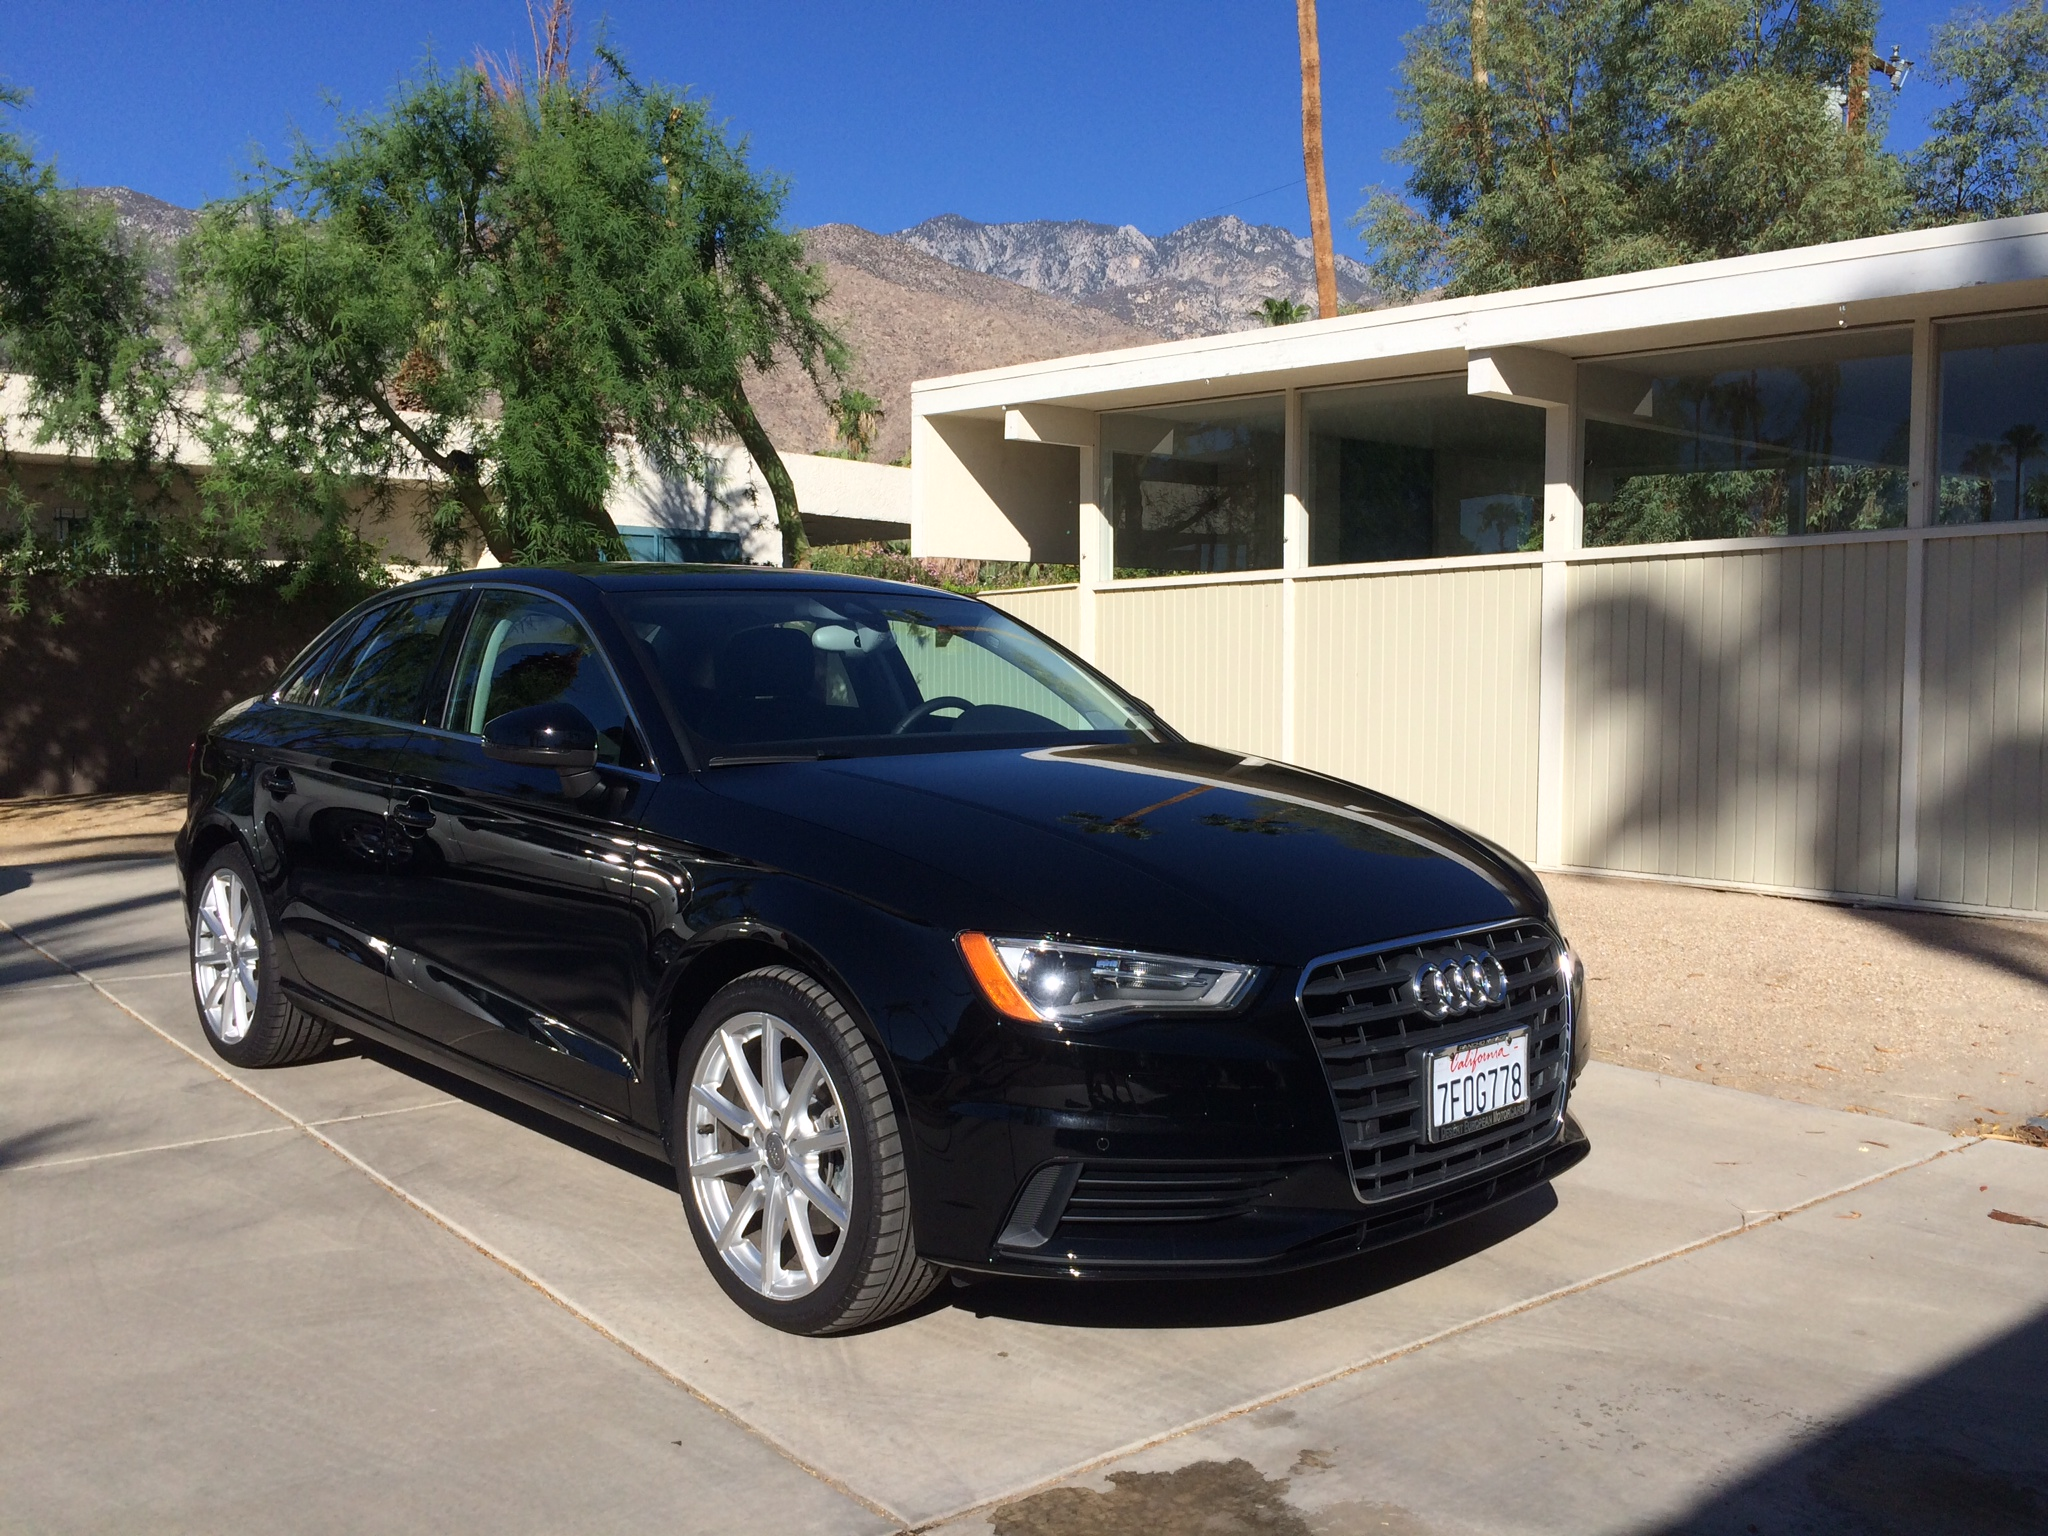 Audi A Audis Entry Level At A Steep Price Todd - Audi car 2015 price